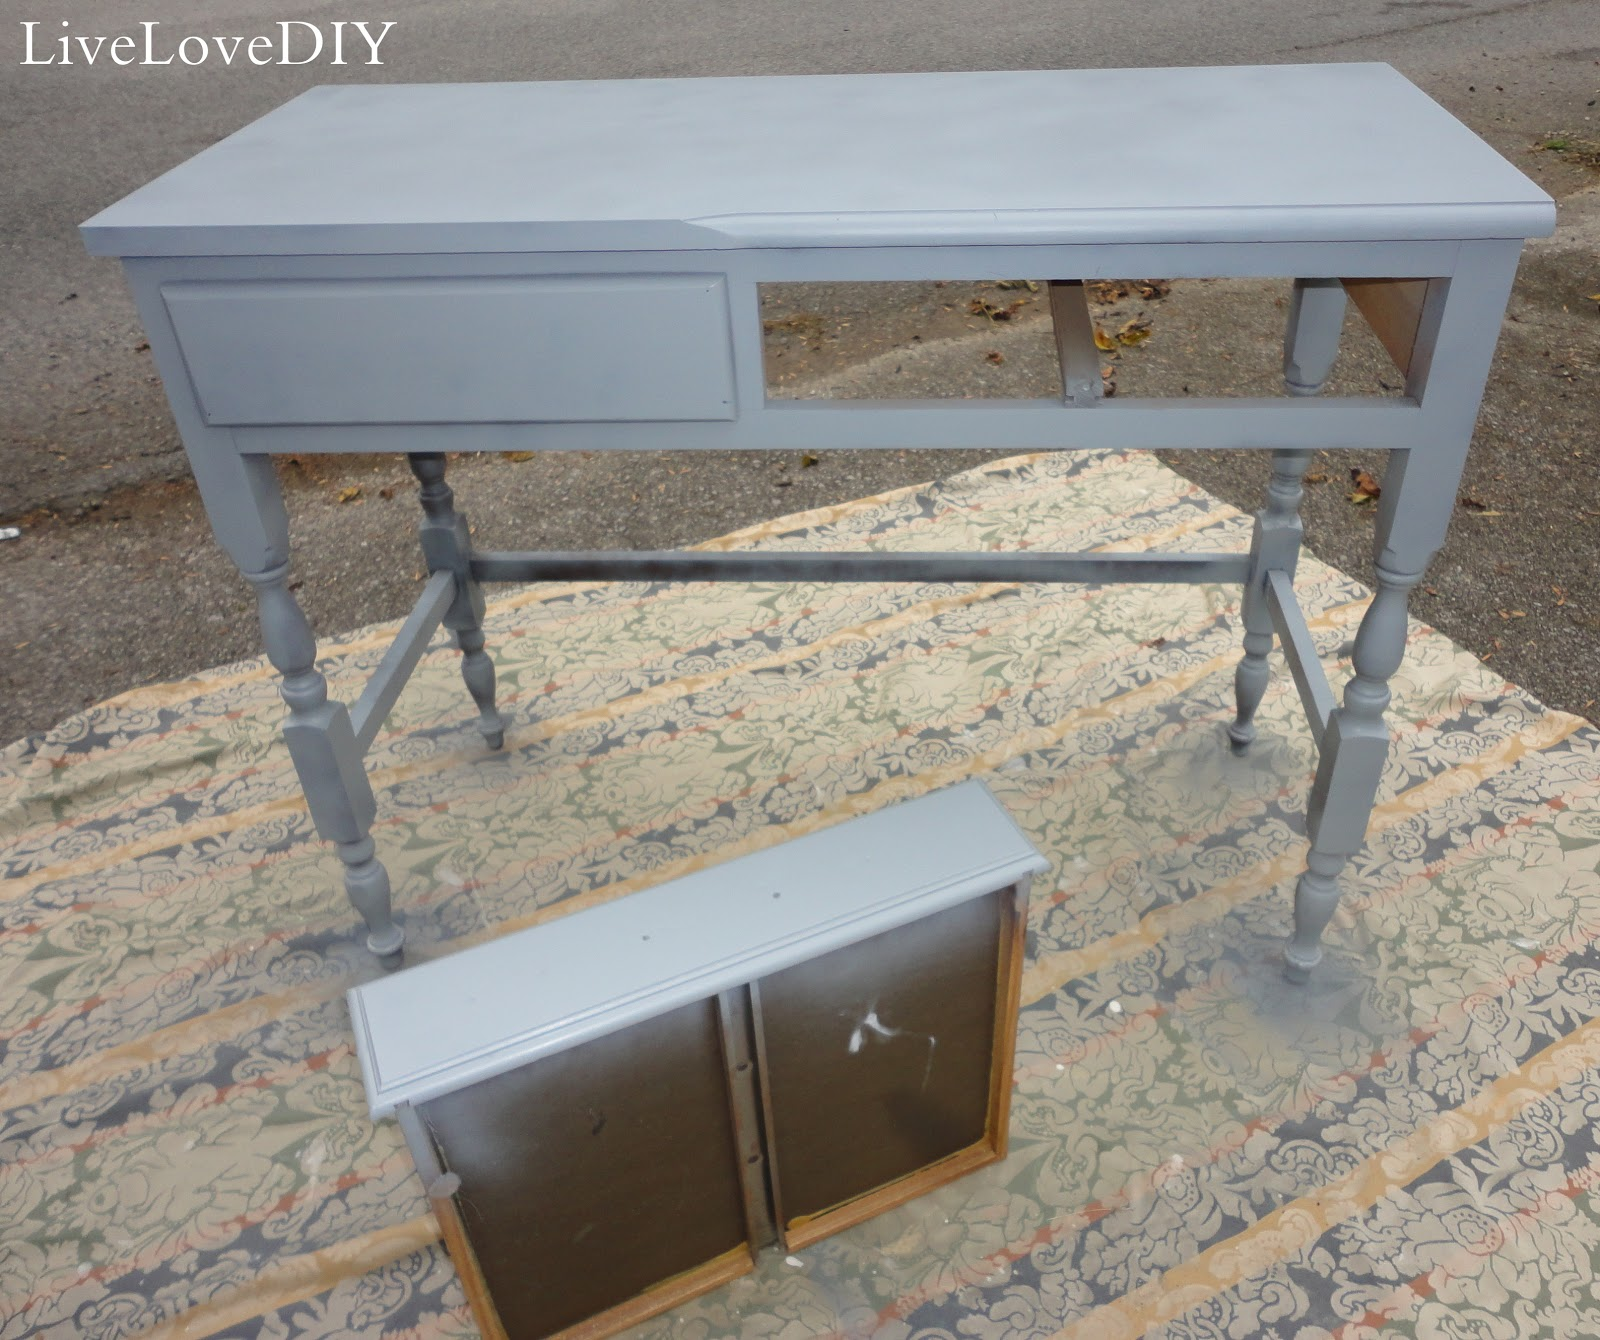 Livelovediy how to fix a spray paint disaster for Dark grey furniture paint